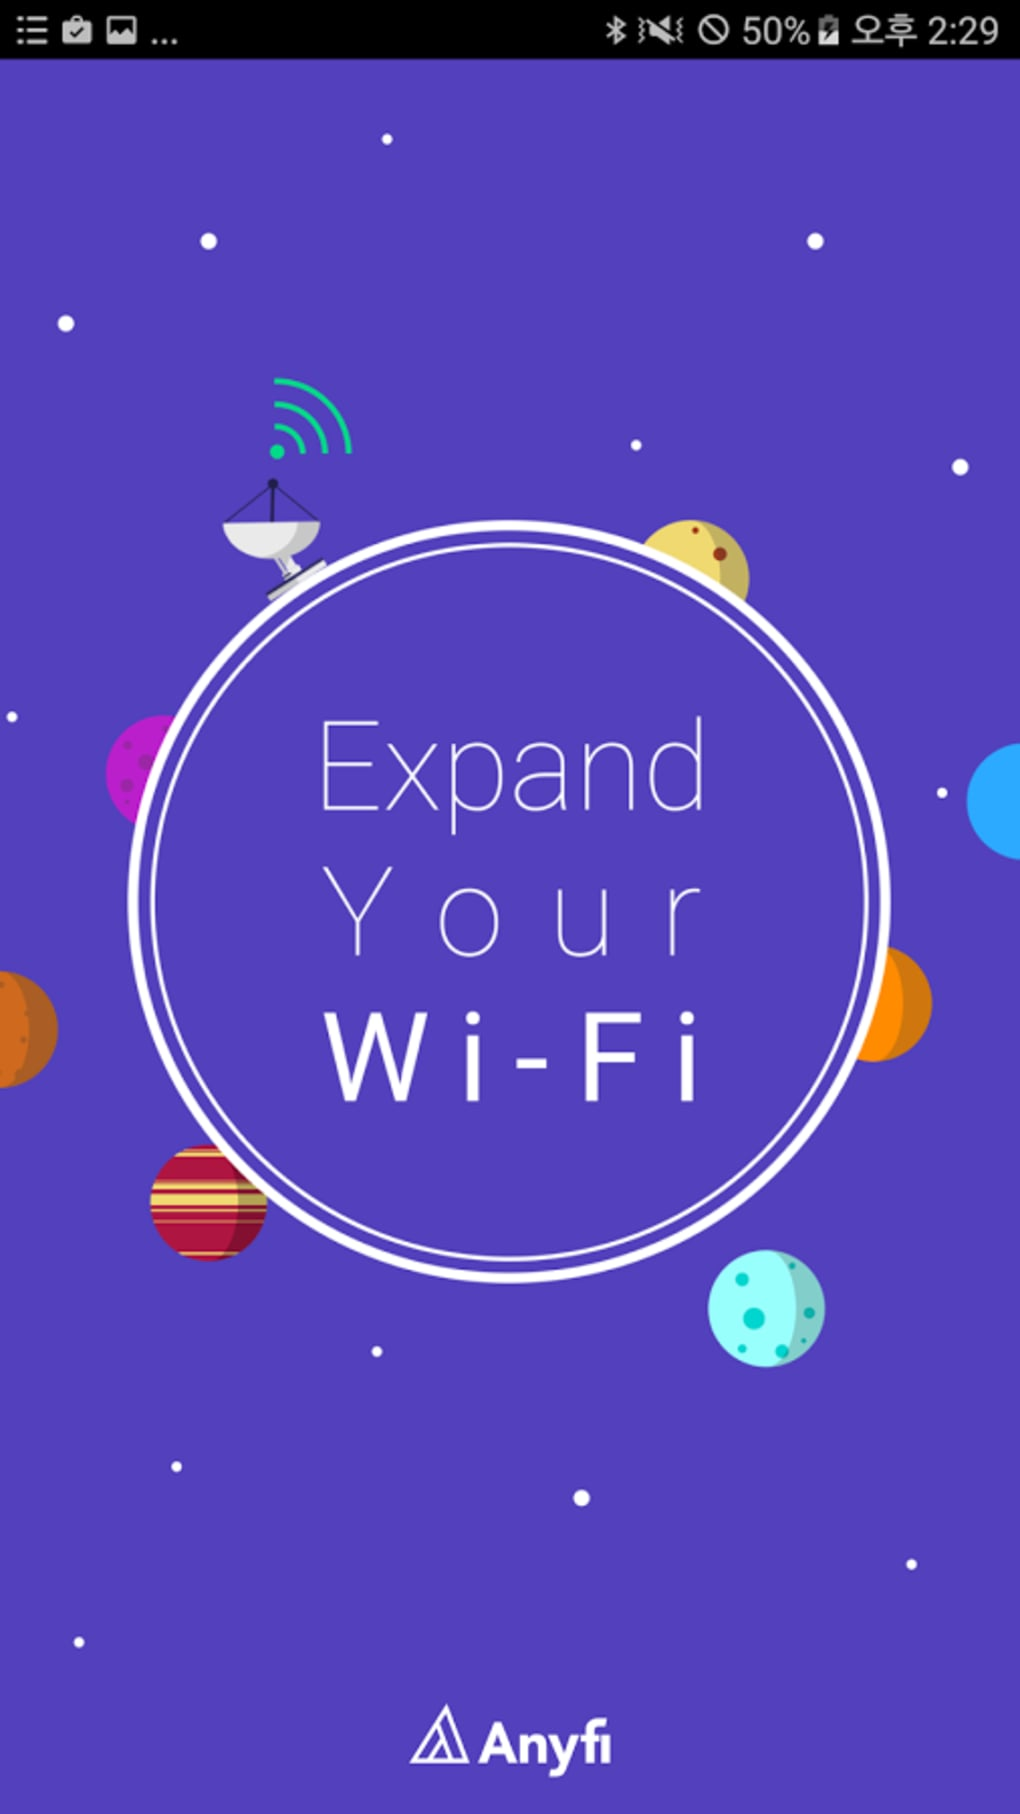 Anyfi - Free P2P WiFi for Android - Download